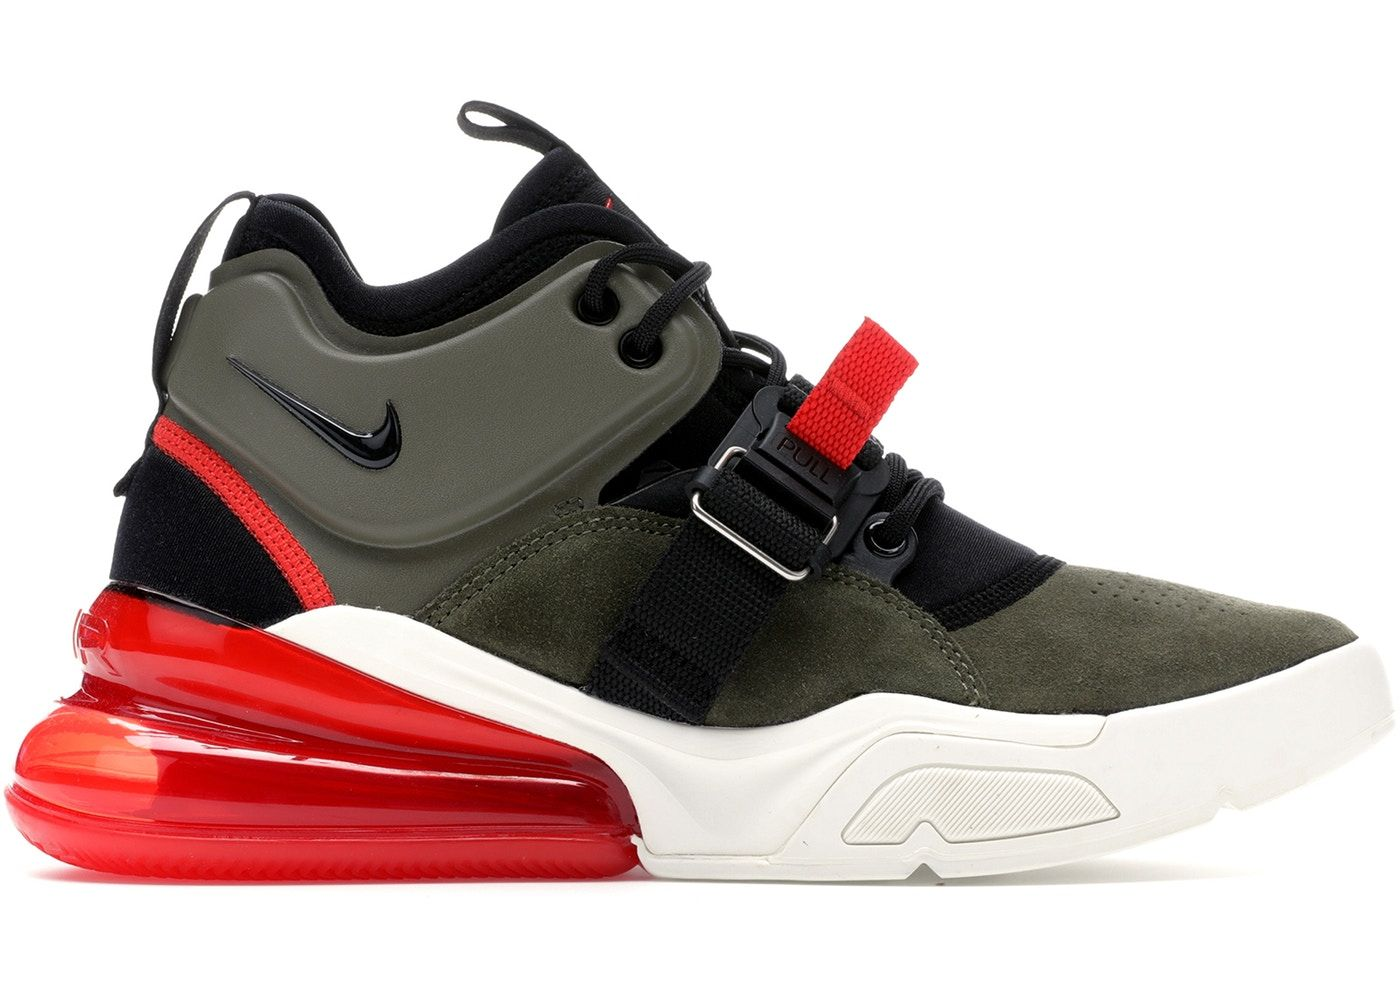 best service 069c1 a398b Air Force 270 Medium Olive/Challenge Red in 2019 | Nike ...